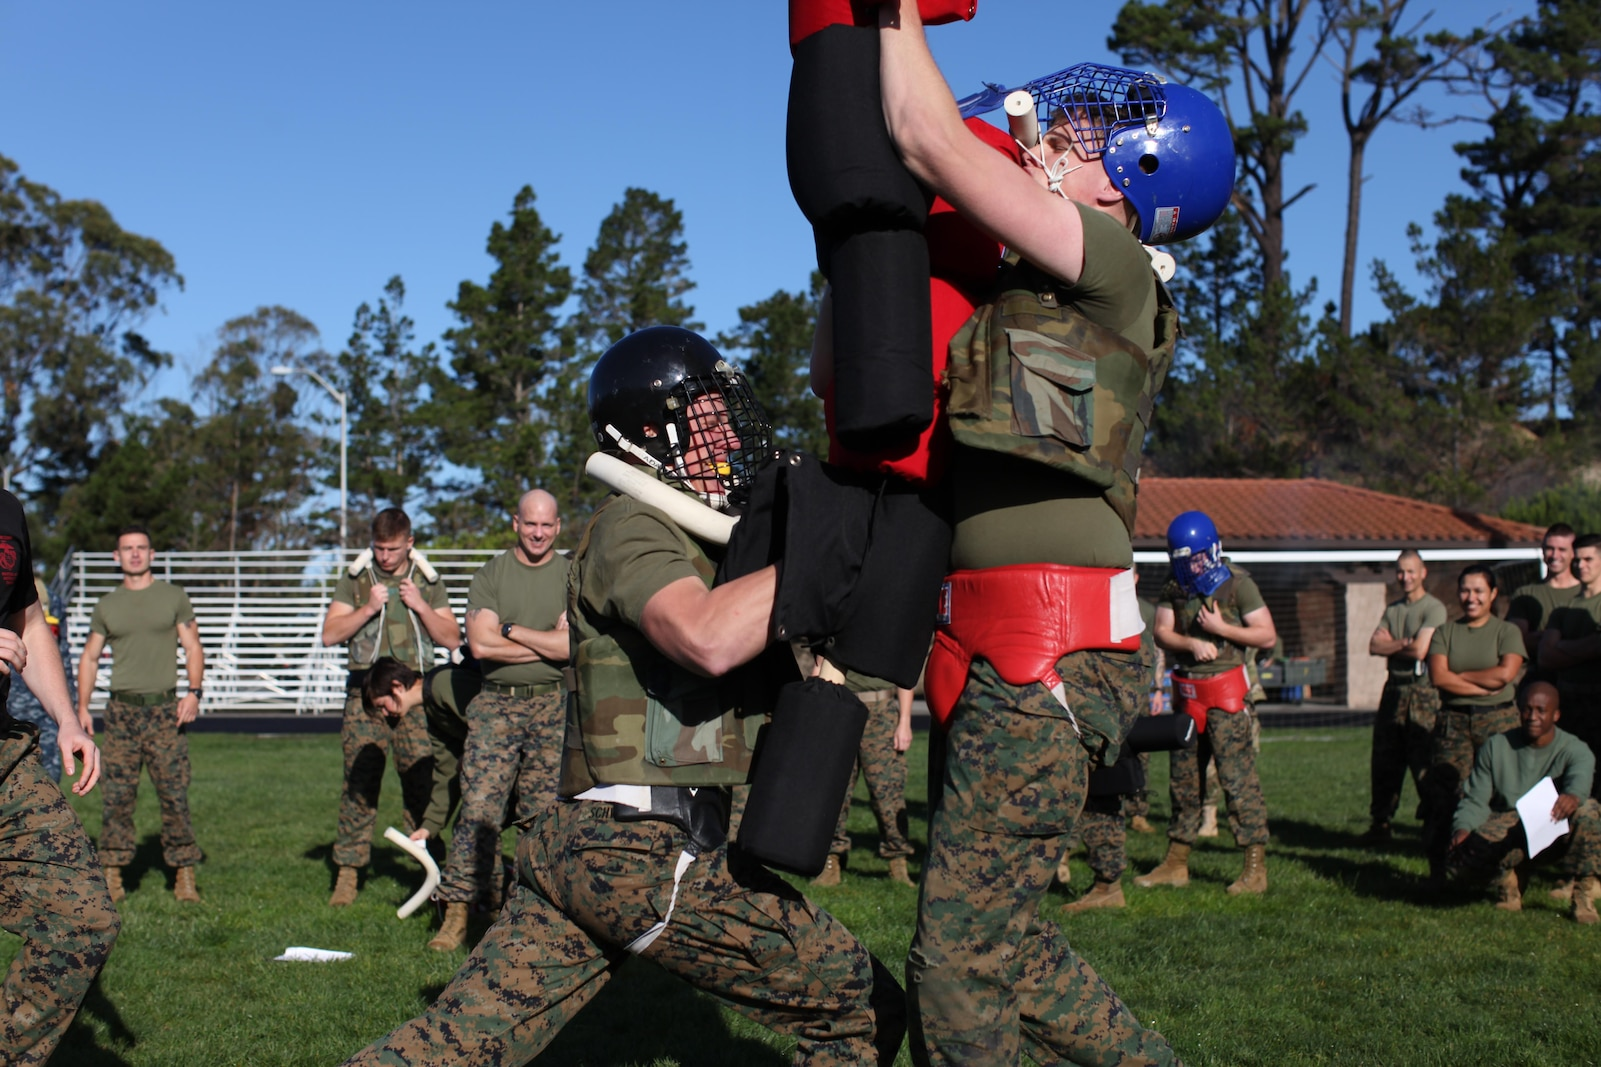 Marines from the Marine Corps Detachment test their martial skills during a pugil stick bout.